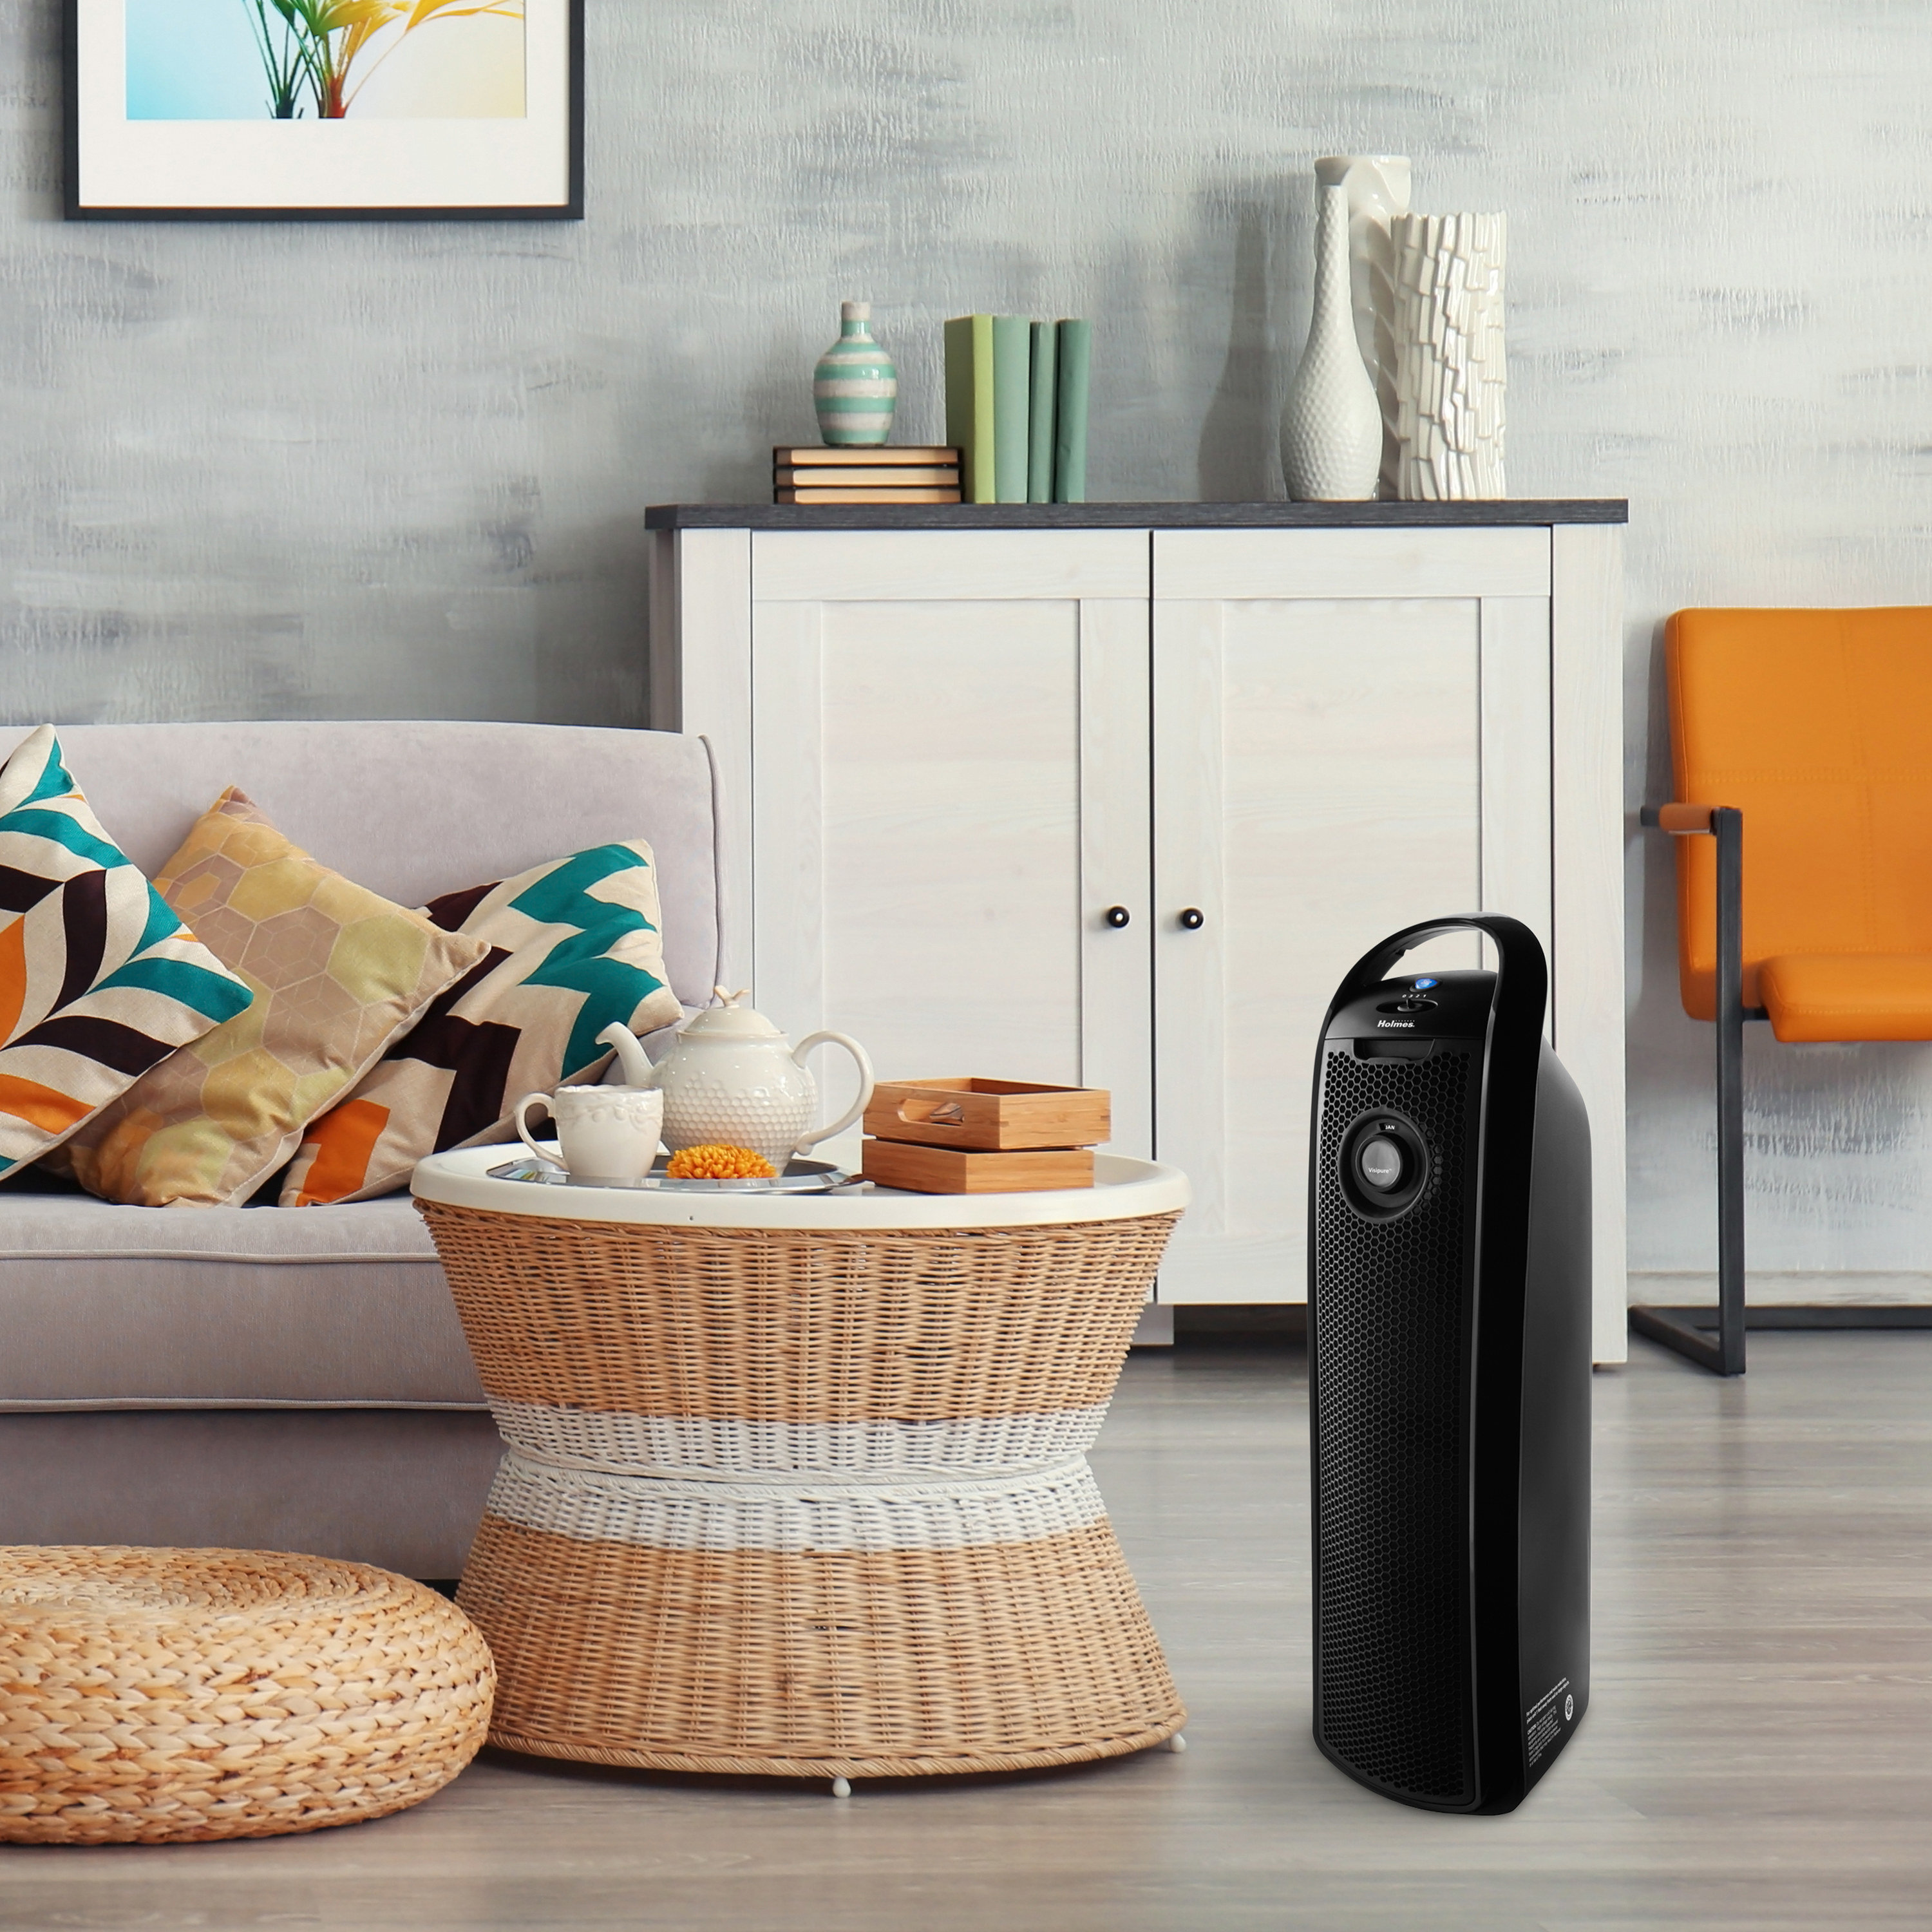 black air purifier inside a living room with bright furniture